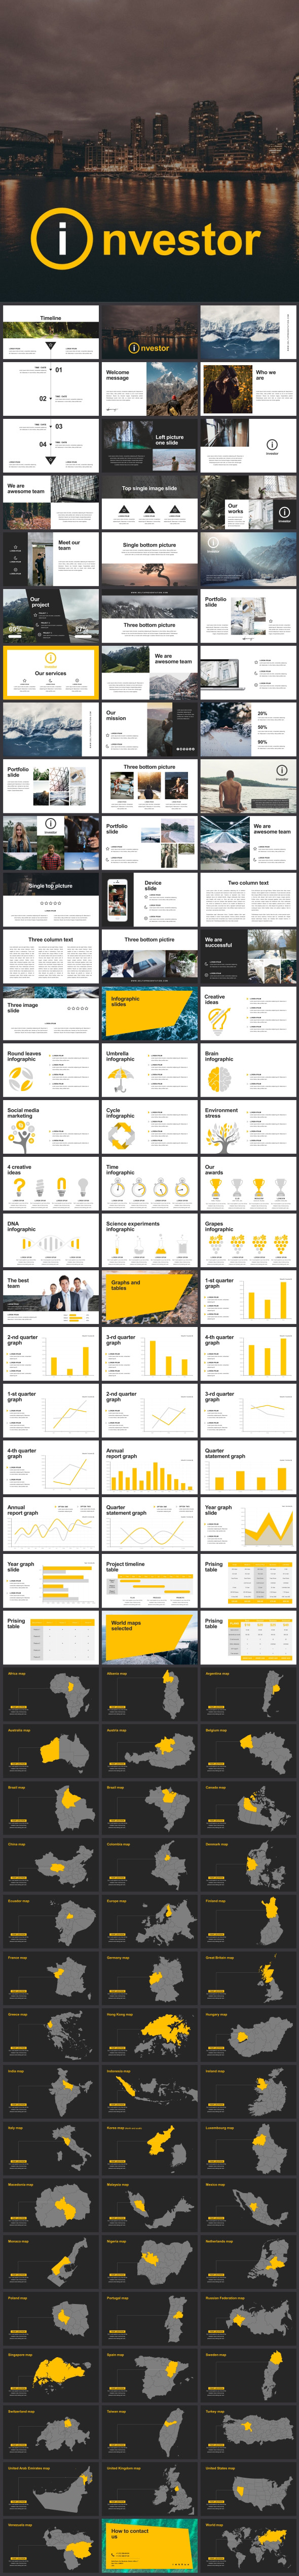 Investor Powerpoint Template - Business PowerPoint Templates